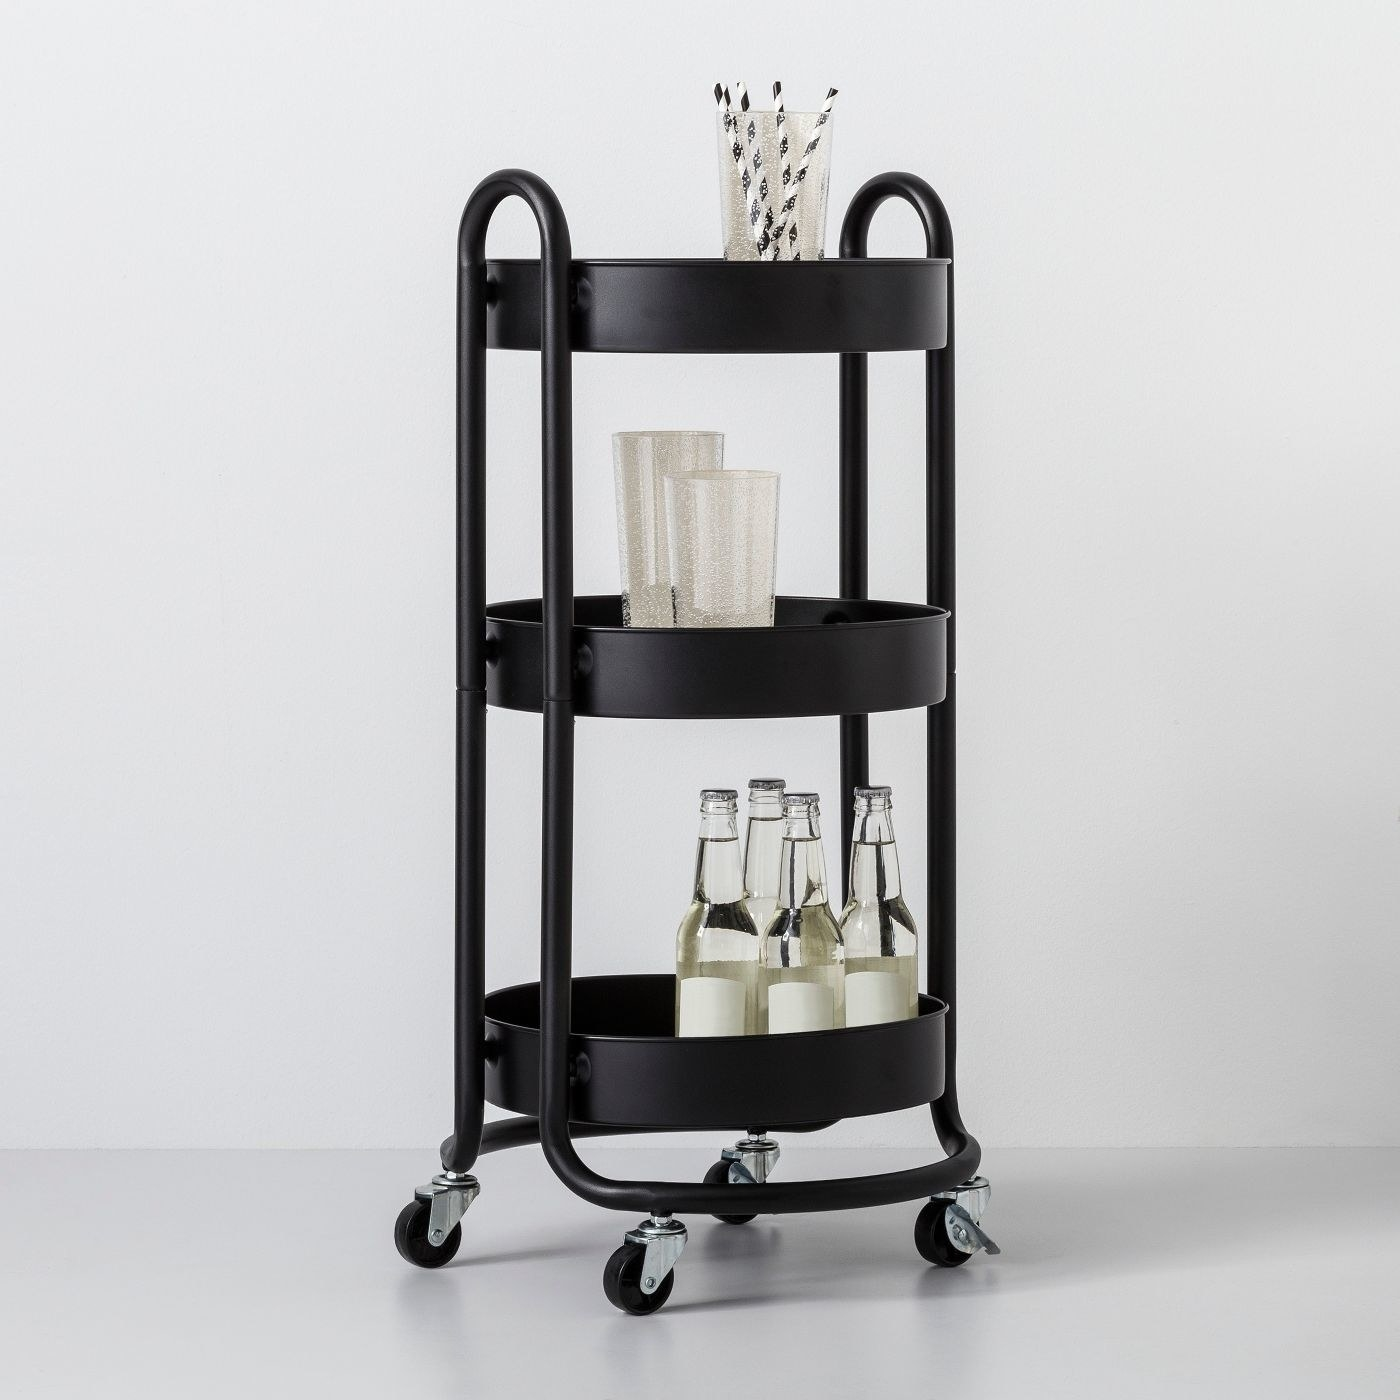 black round metal utility cart with wheels, with bottles and cups on the shelves